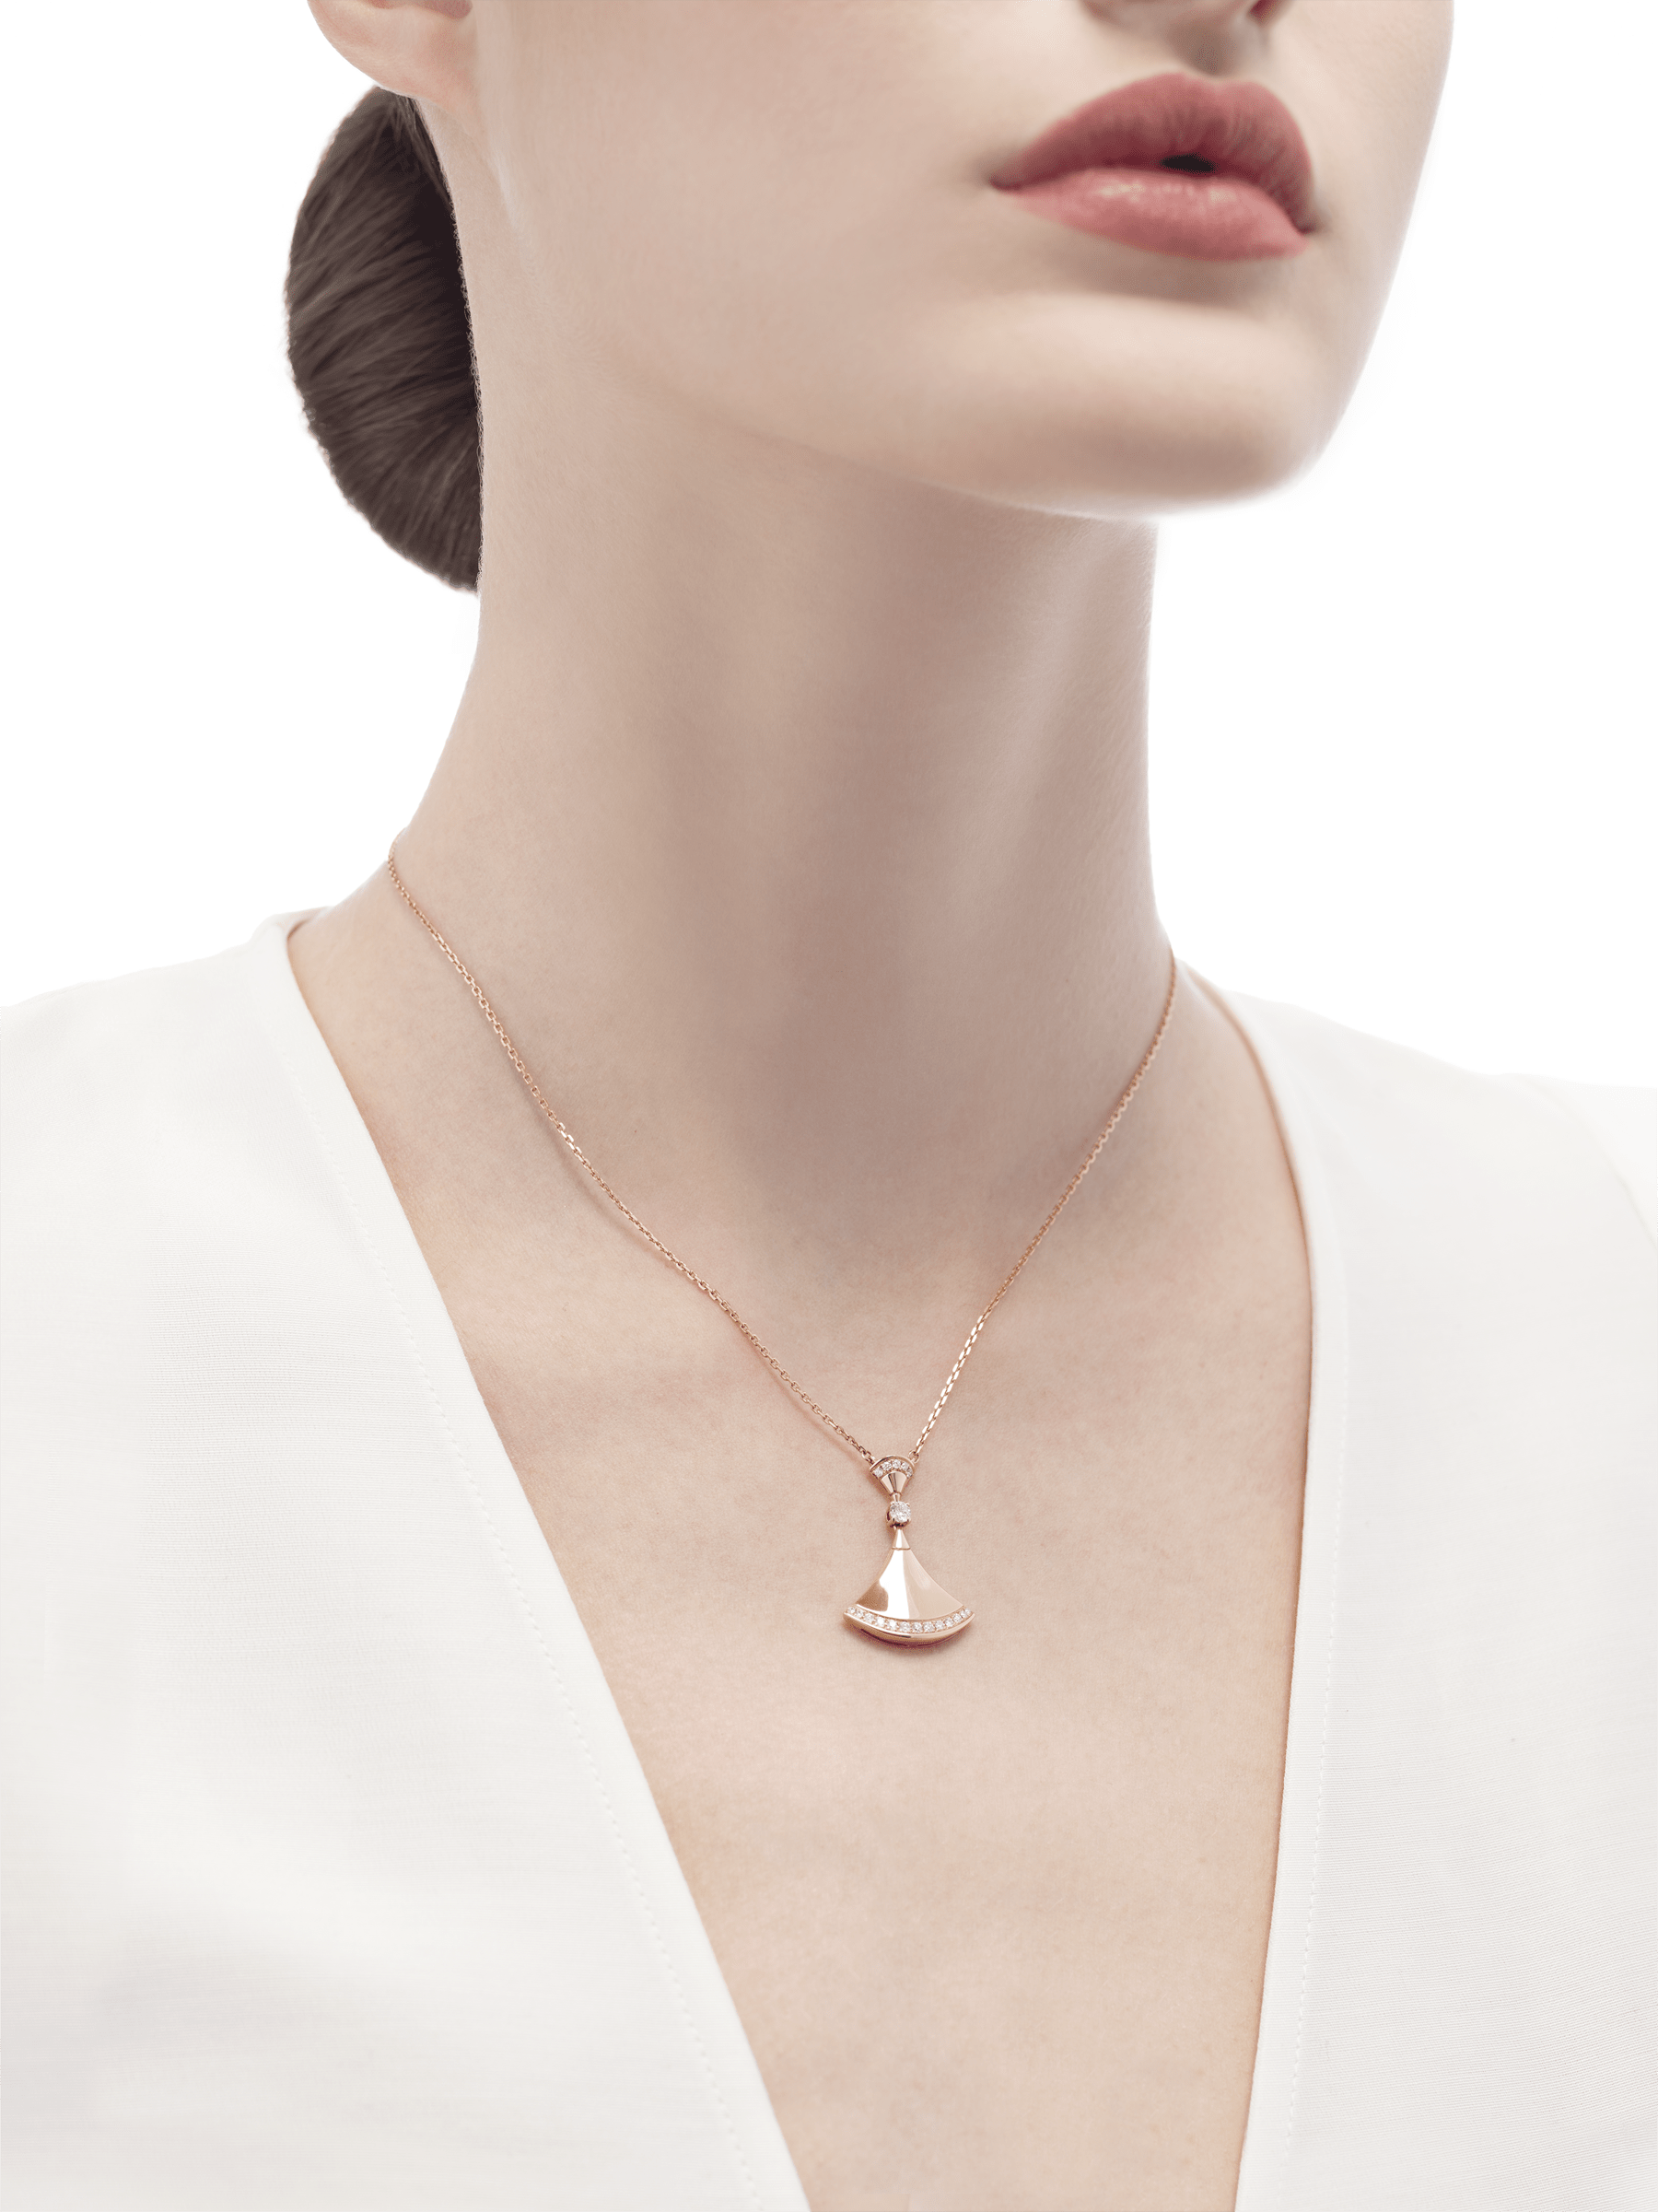 DIVAS' DREAM necklace in 18 kt rose gold with pendant set with one diamond and pavé diamonds. 350063 image 3